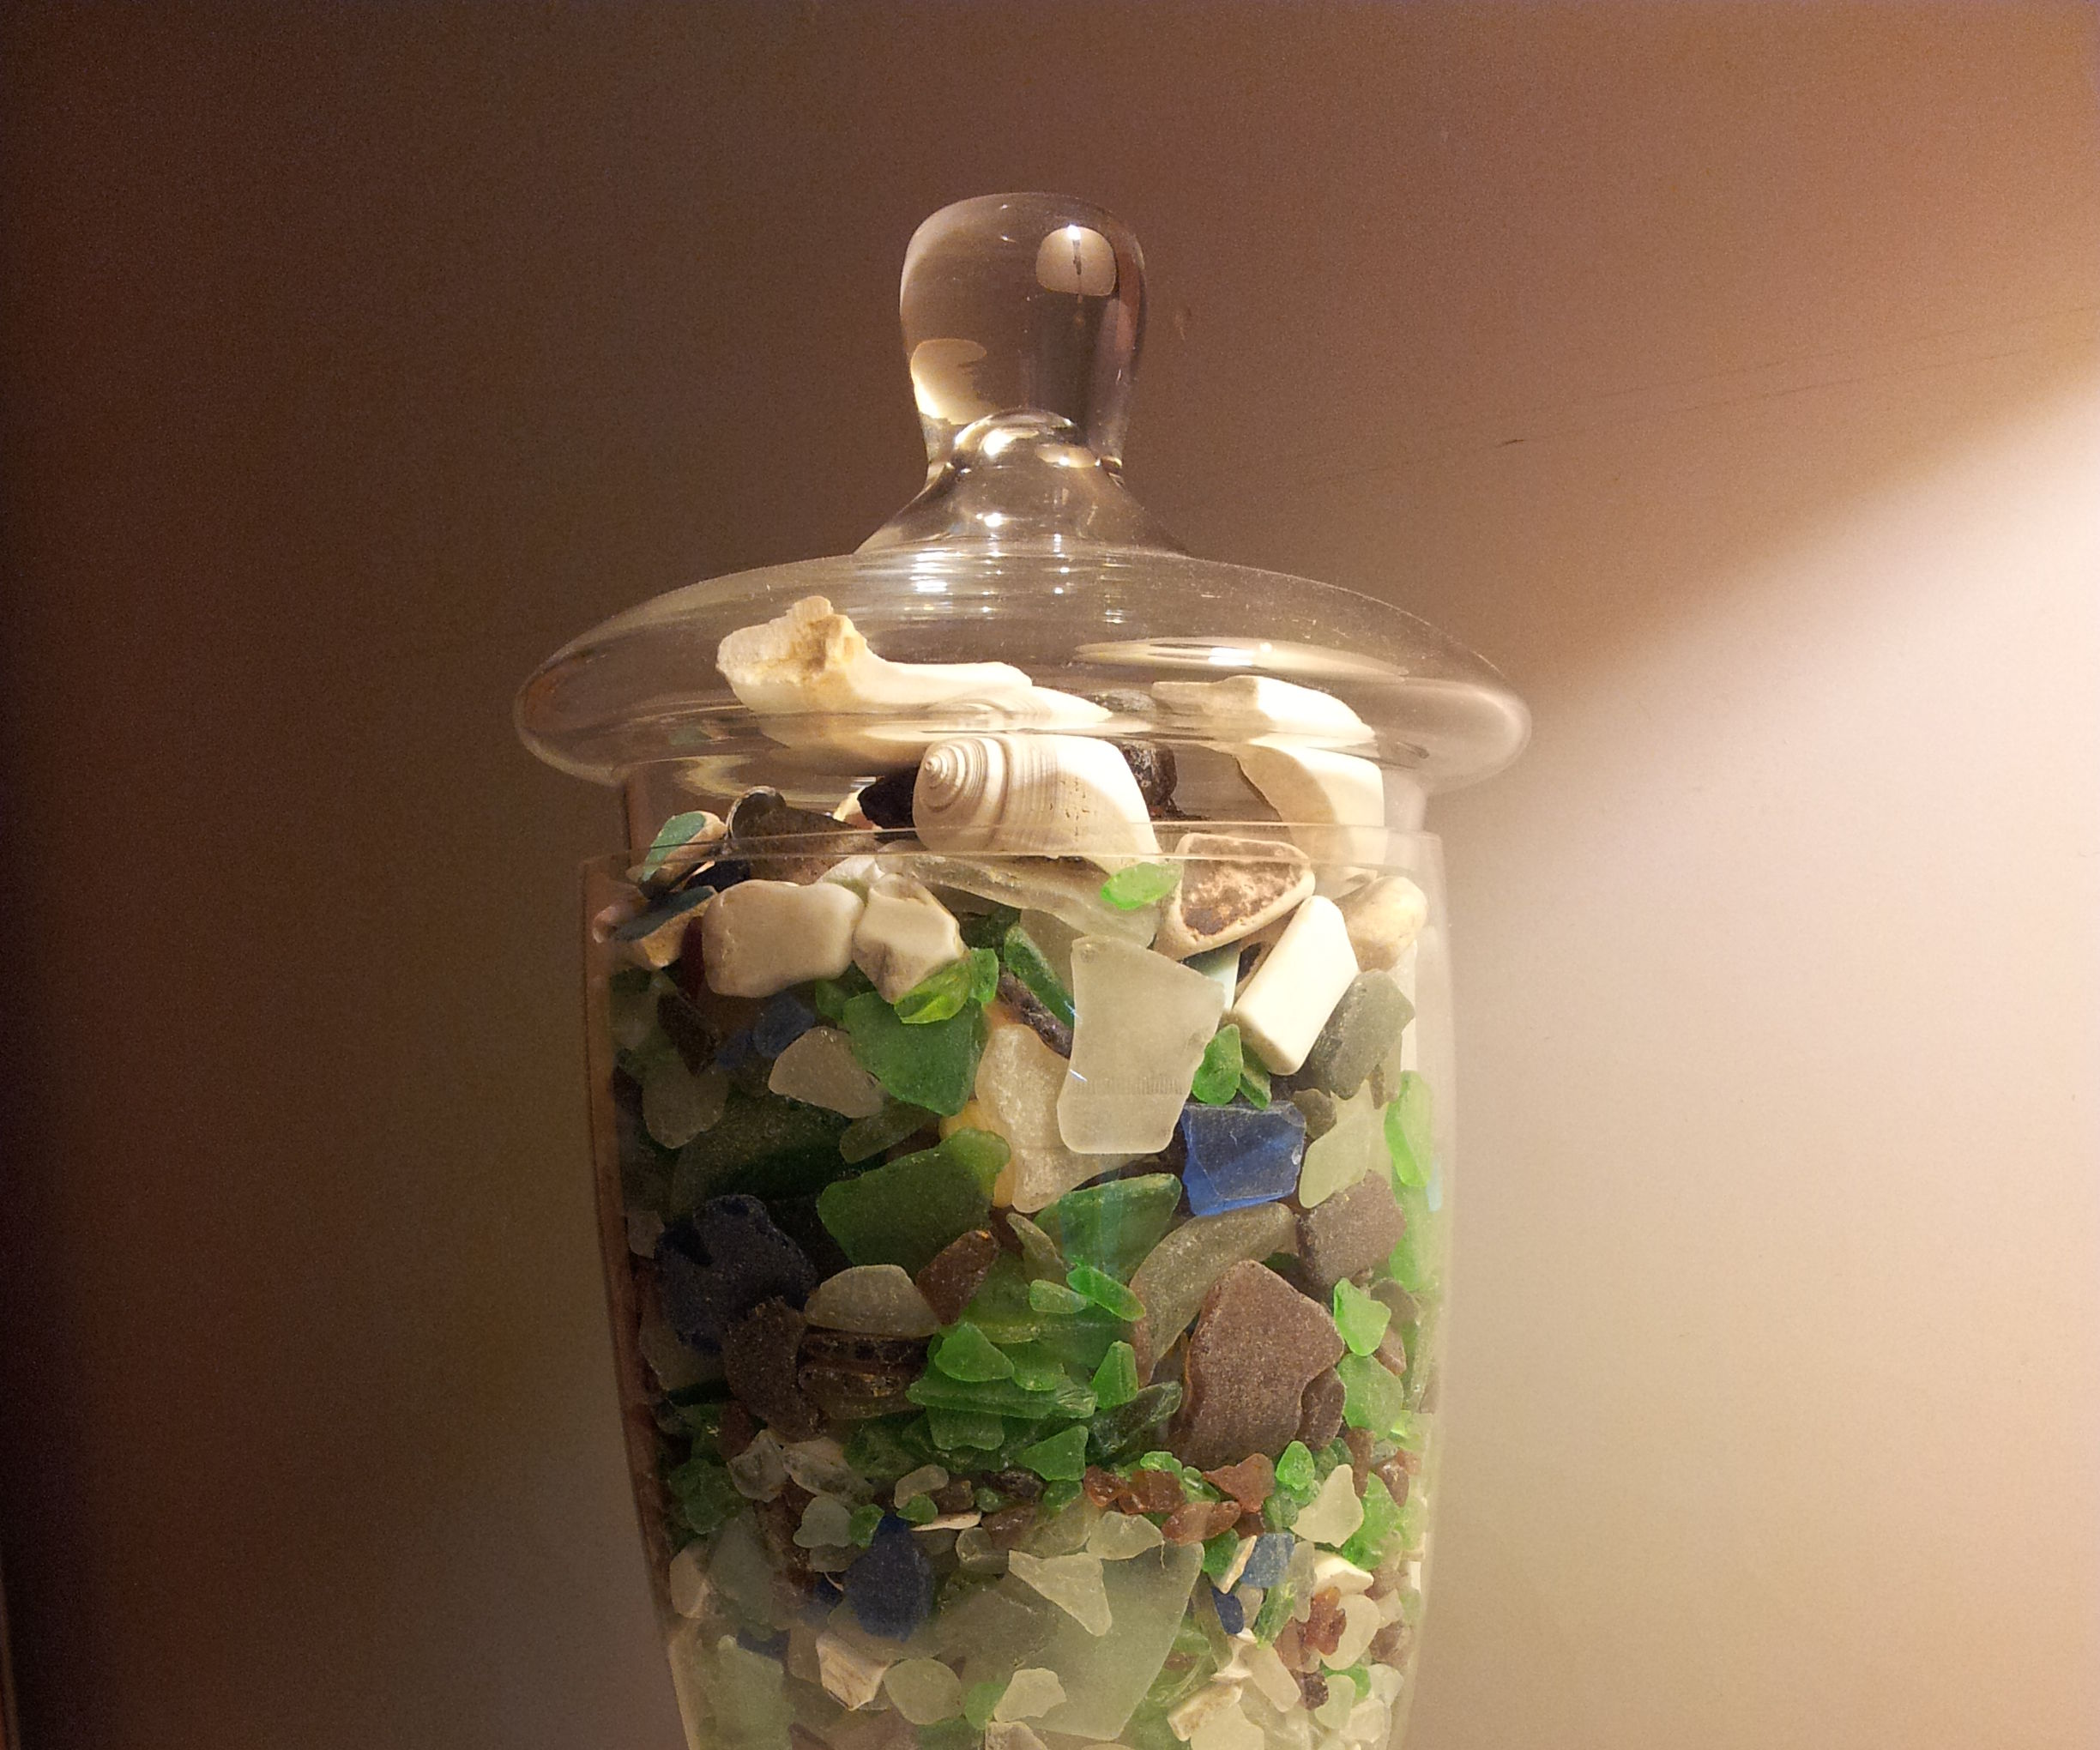 Decorative Seaglass Vase and Secret Compartment